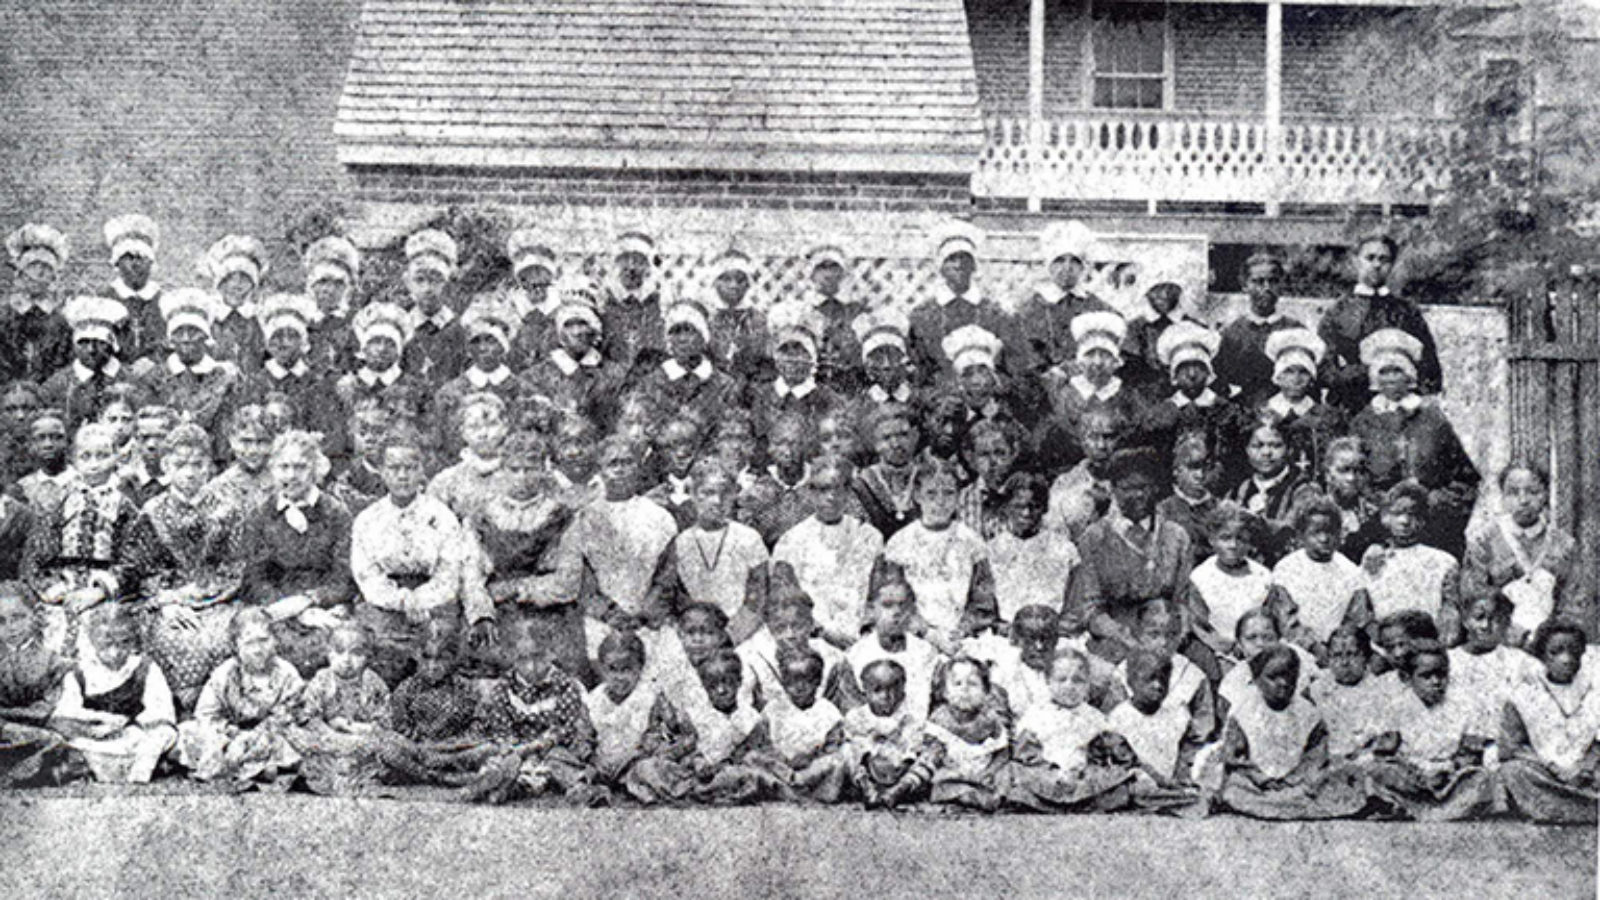 Black and white school photo.